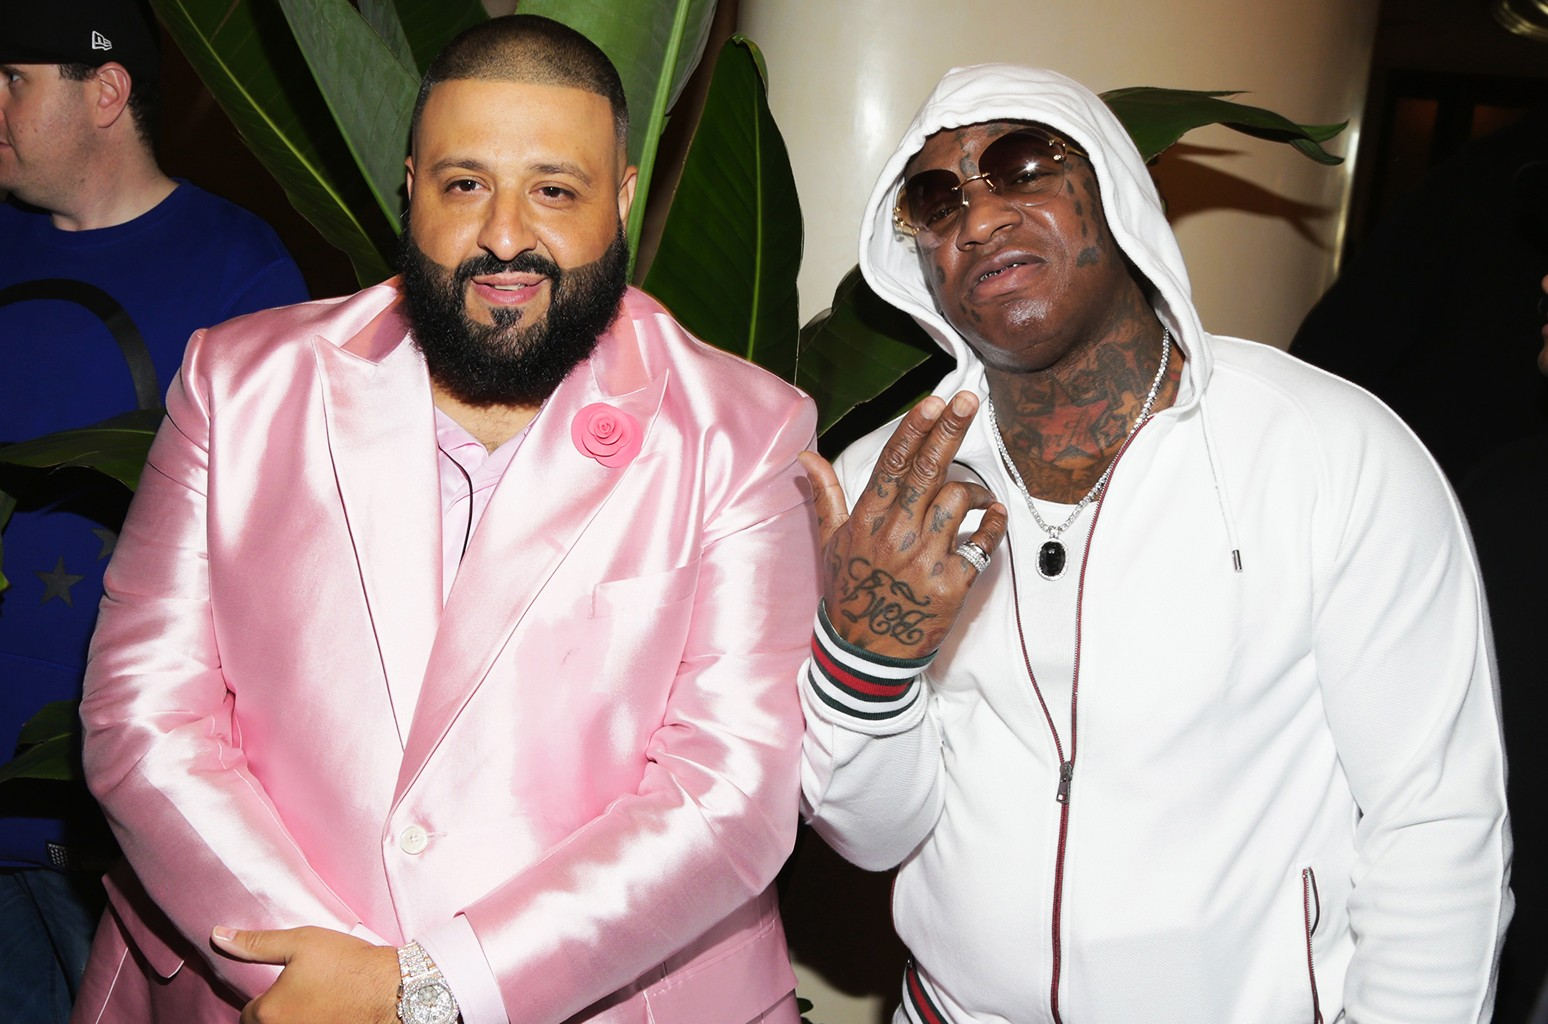 DJ Khaled and Birdman attend DJ Khaled Special Announcement Press Conference at Beverly Hills Hotel on Feb. 9, 2017 in Beverly Hills, Calif.